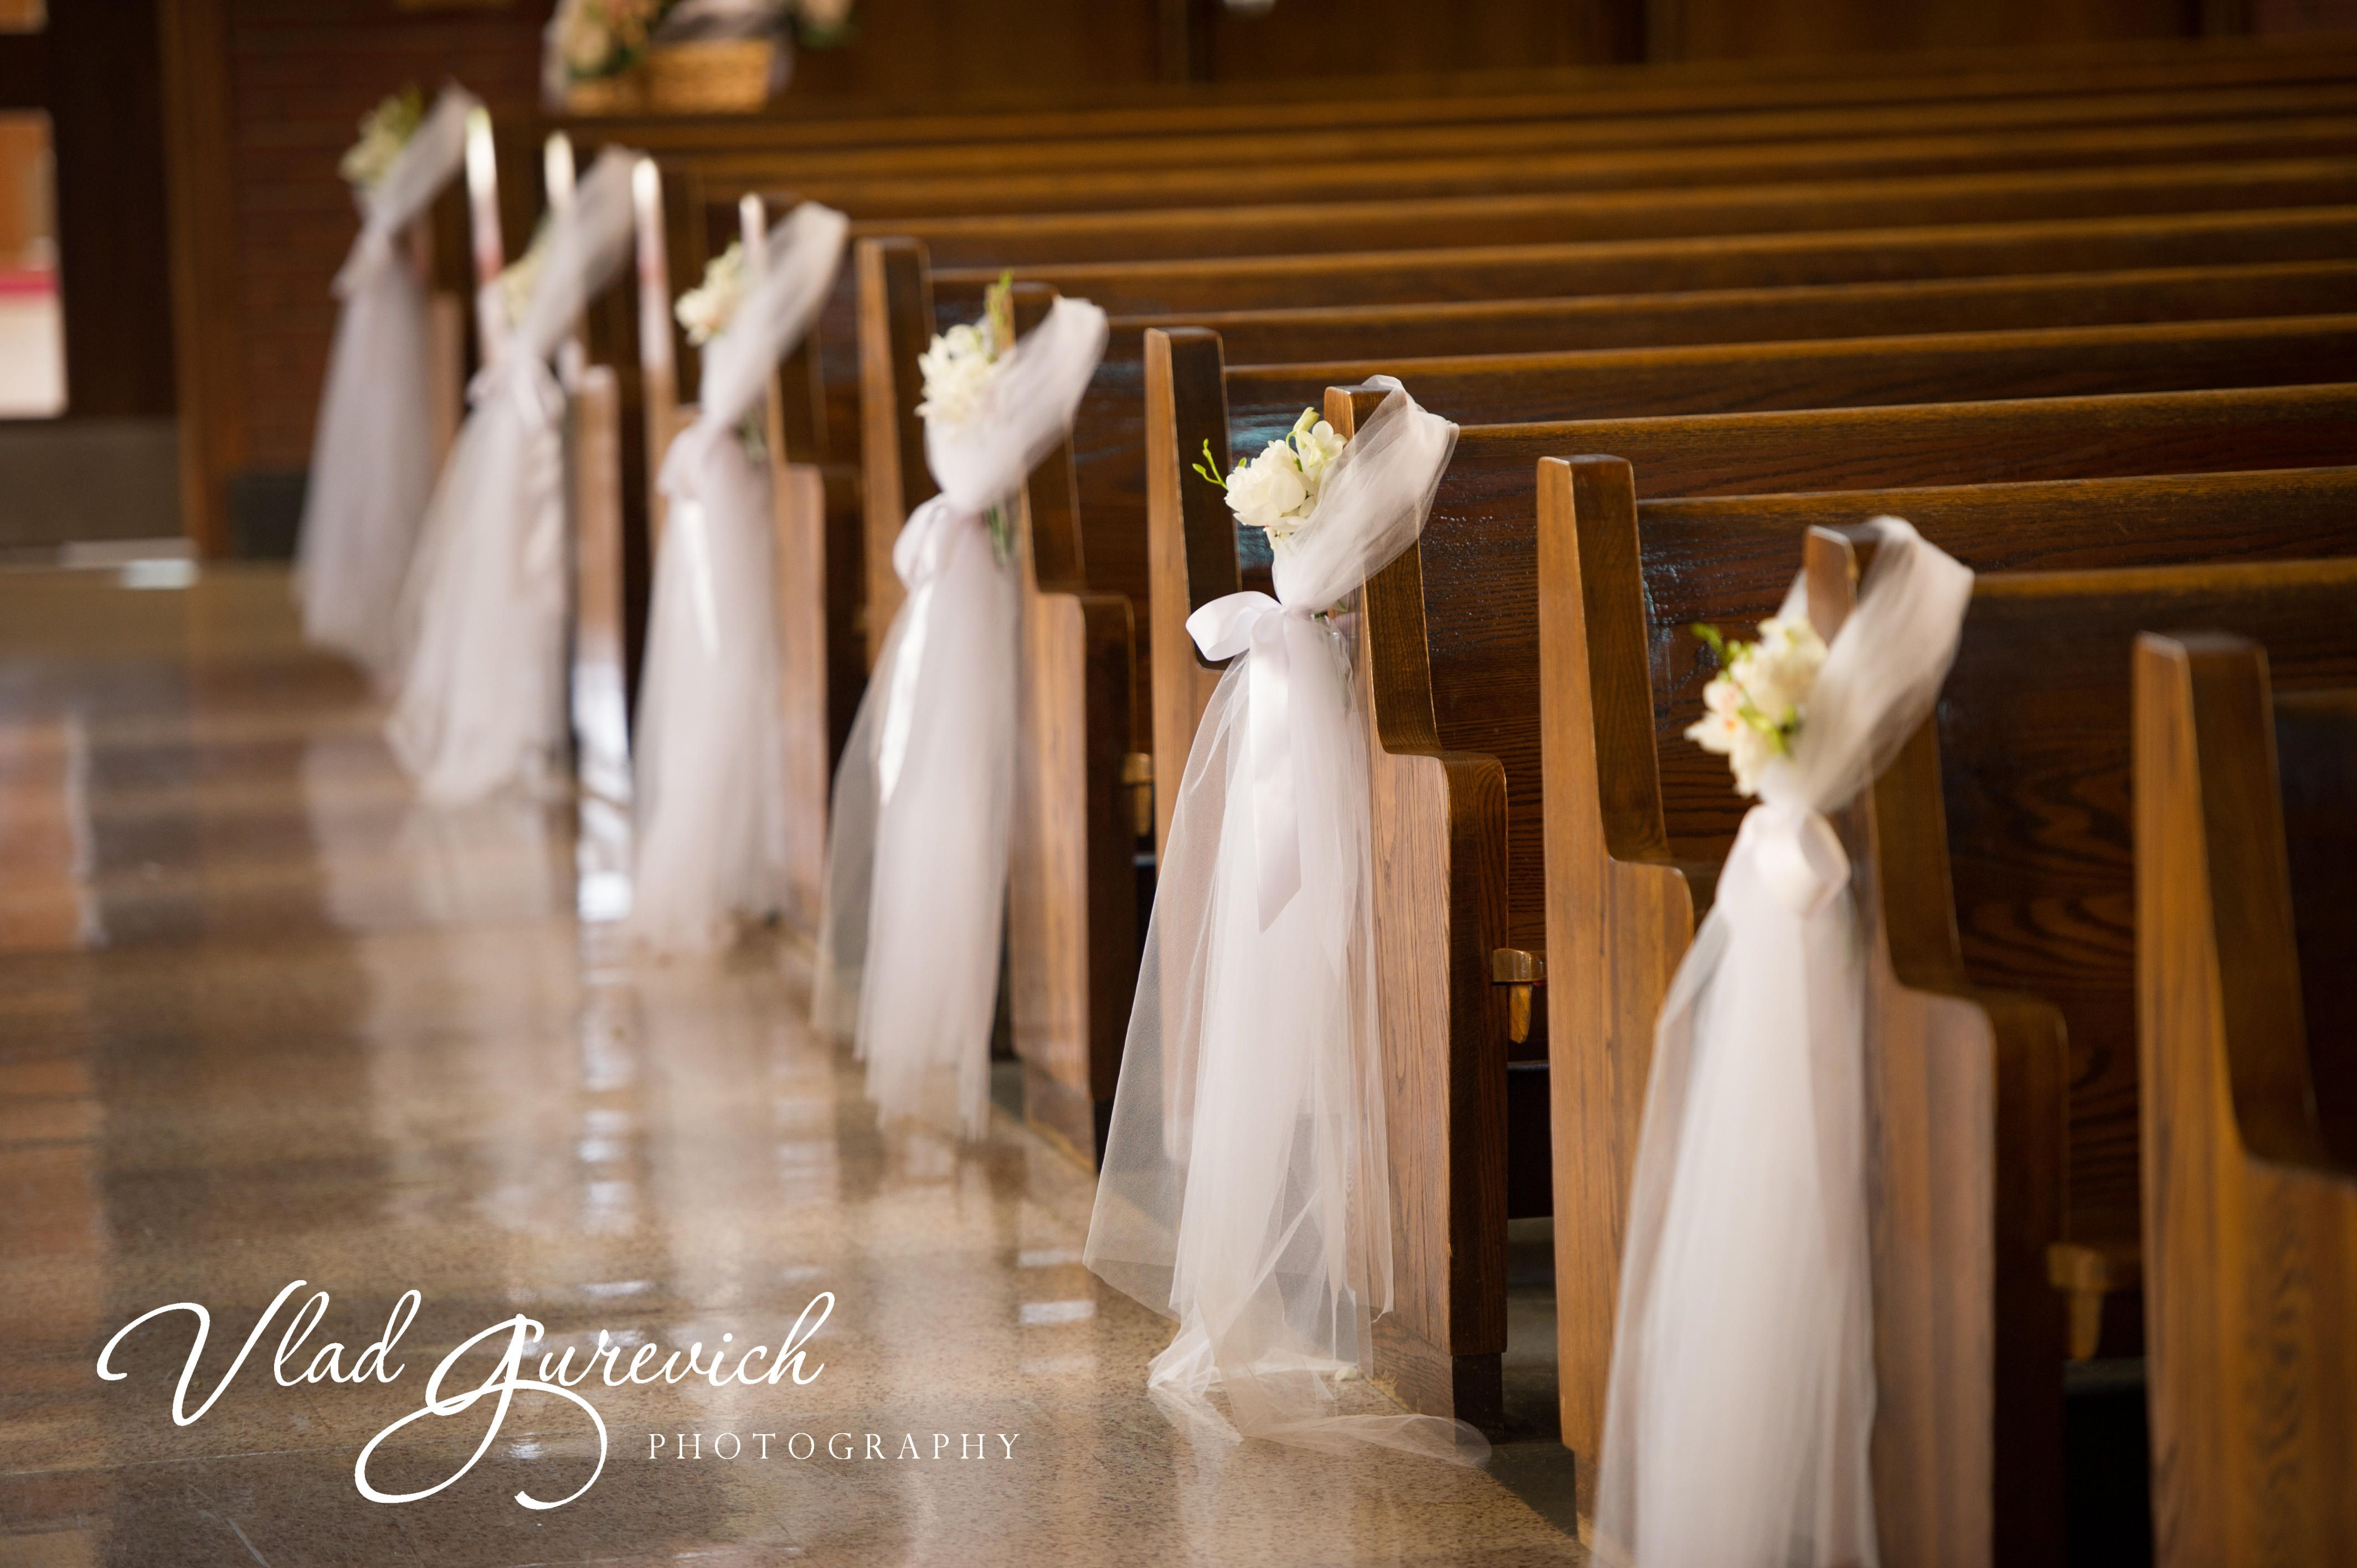 Simple Pew Decor With Swags Of Tulle Accented With Simple